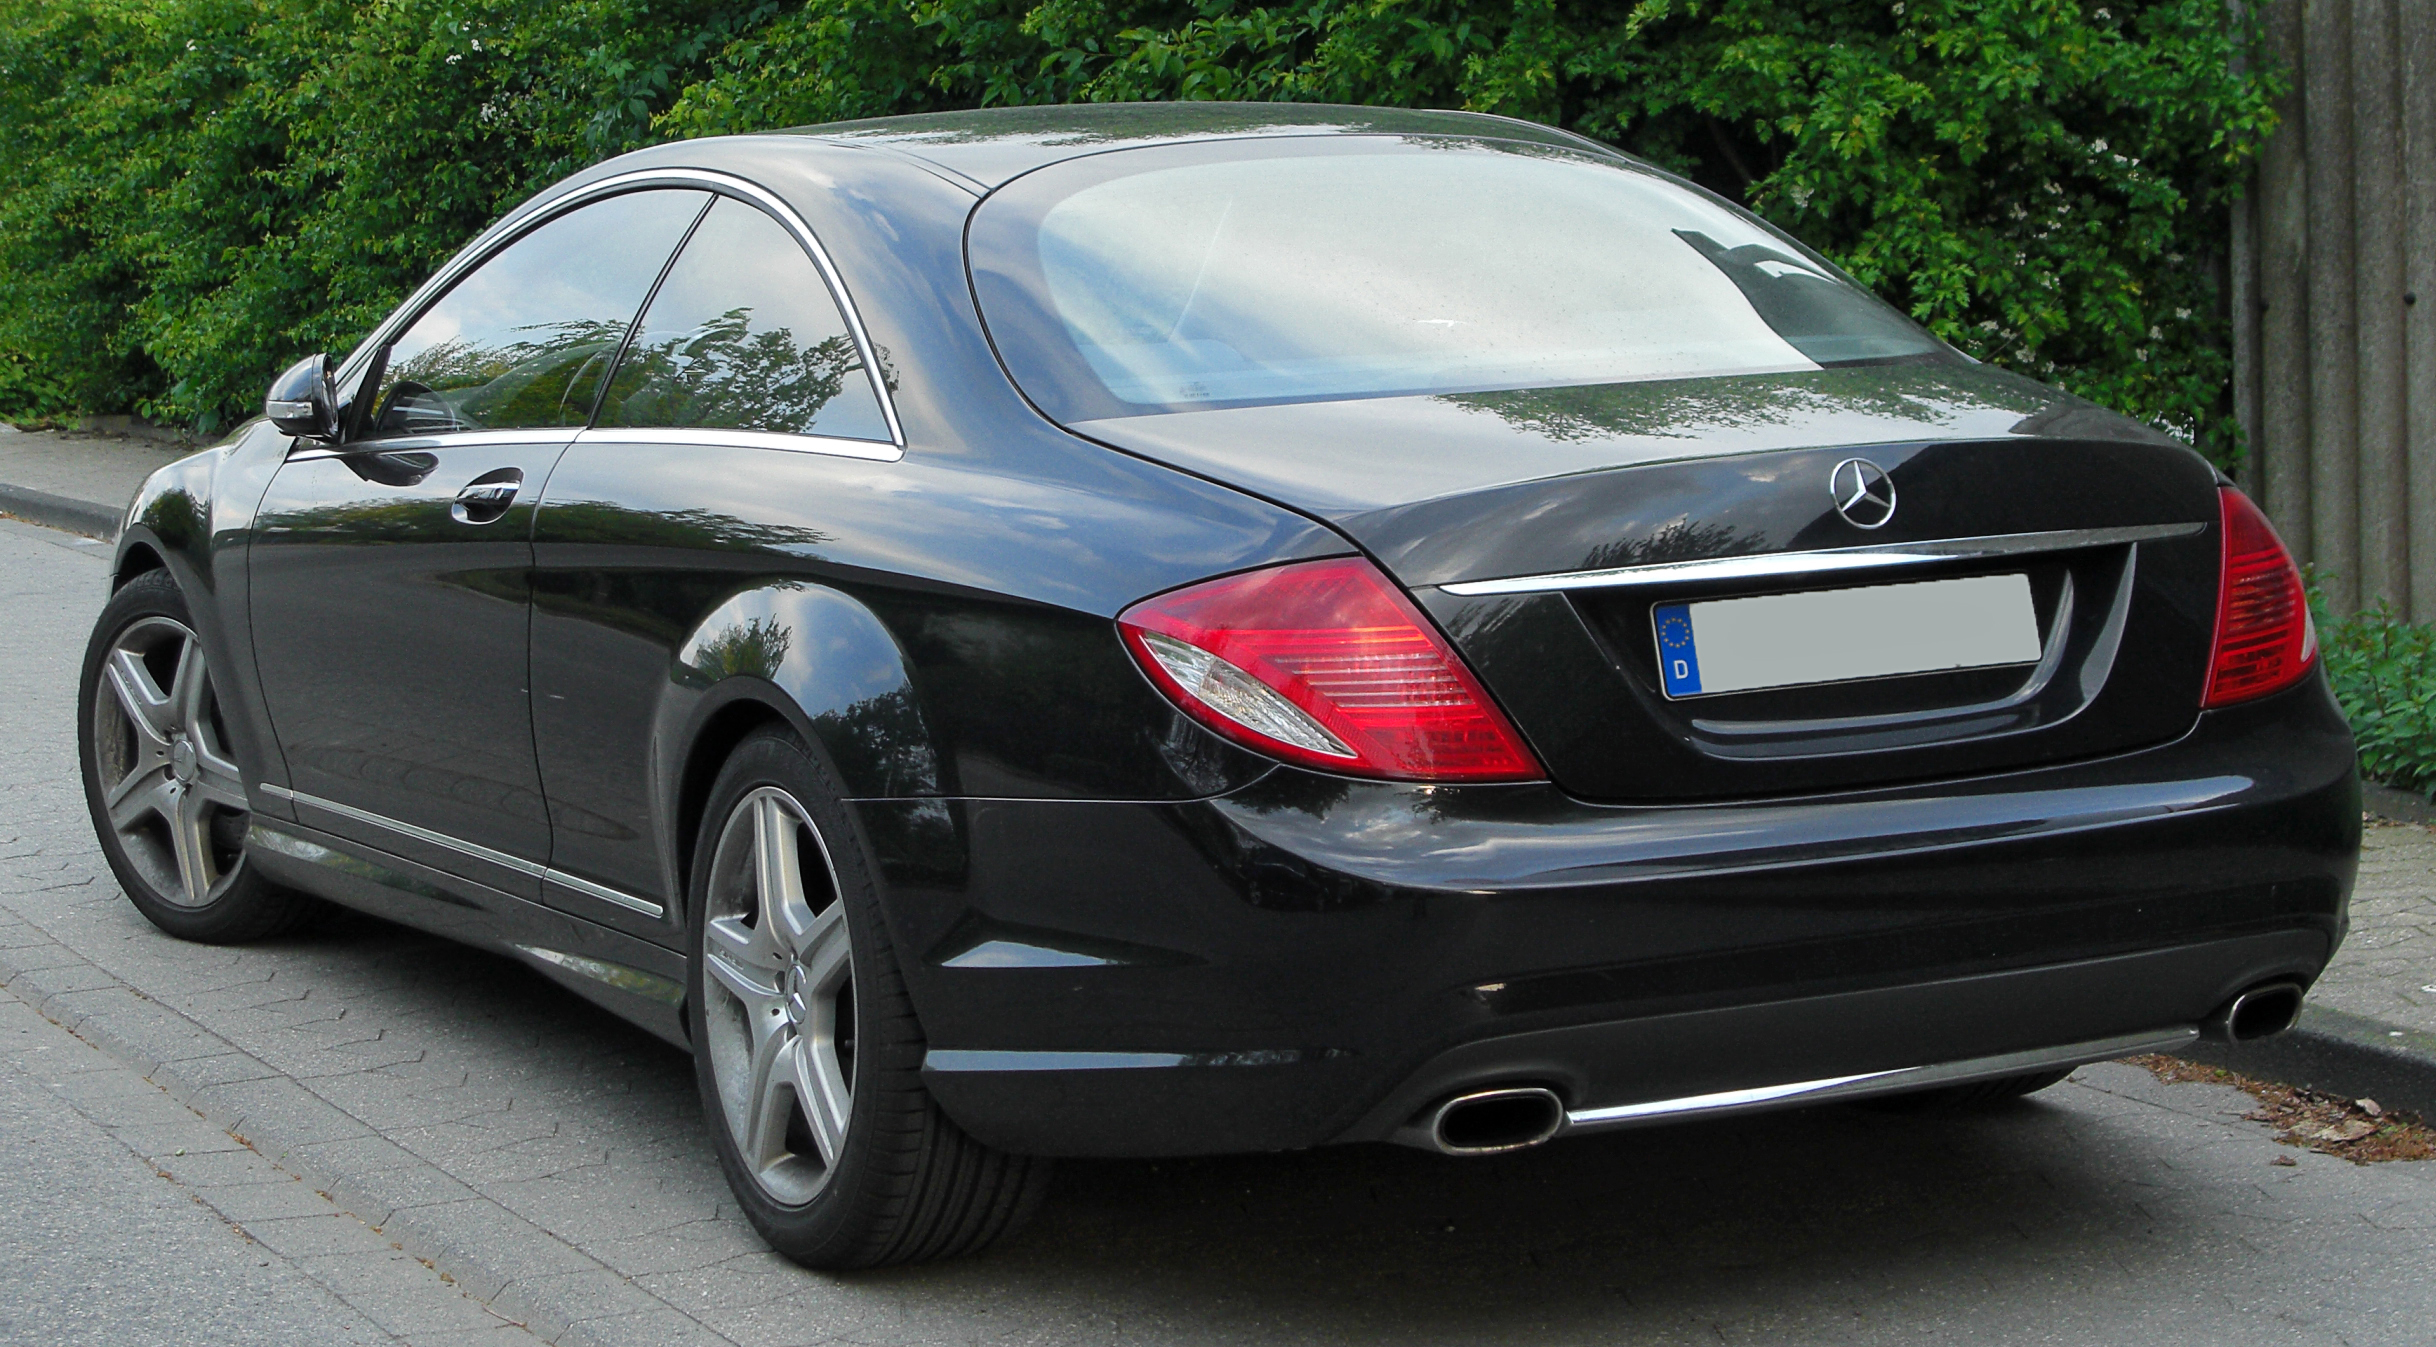 file mercedes cl 500 amg sportpaket c216 rear wikimedia commons. Black Bedroom Furniture Sets. Home Design Ideas